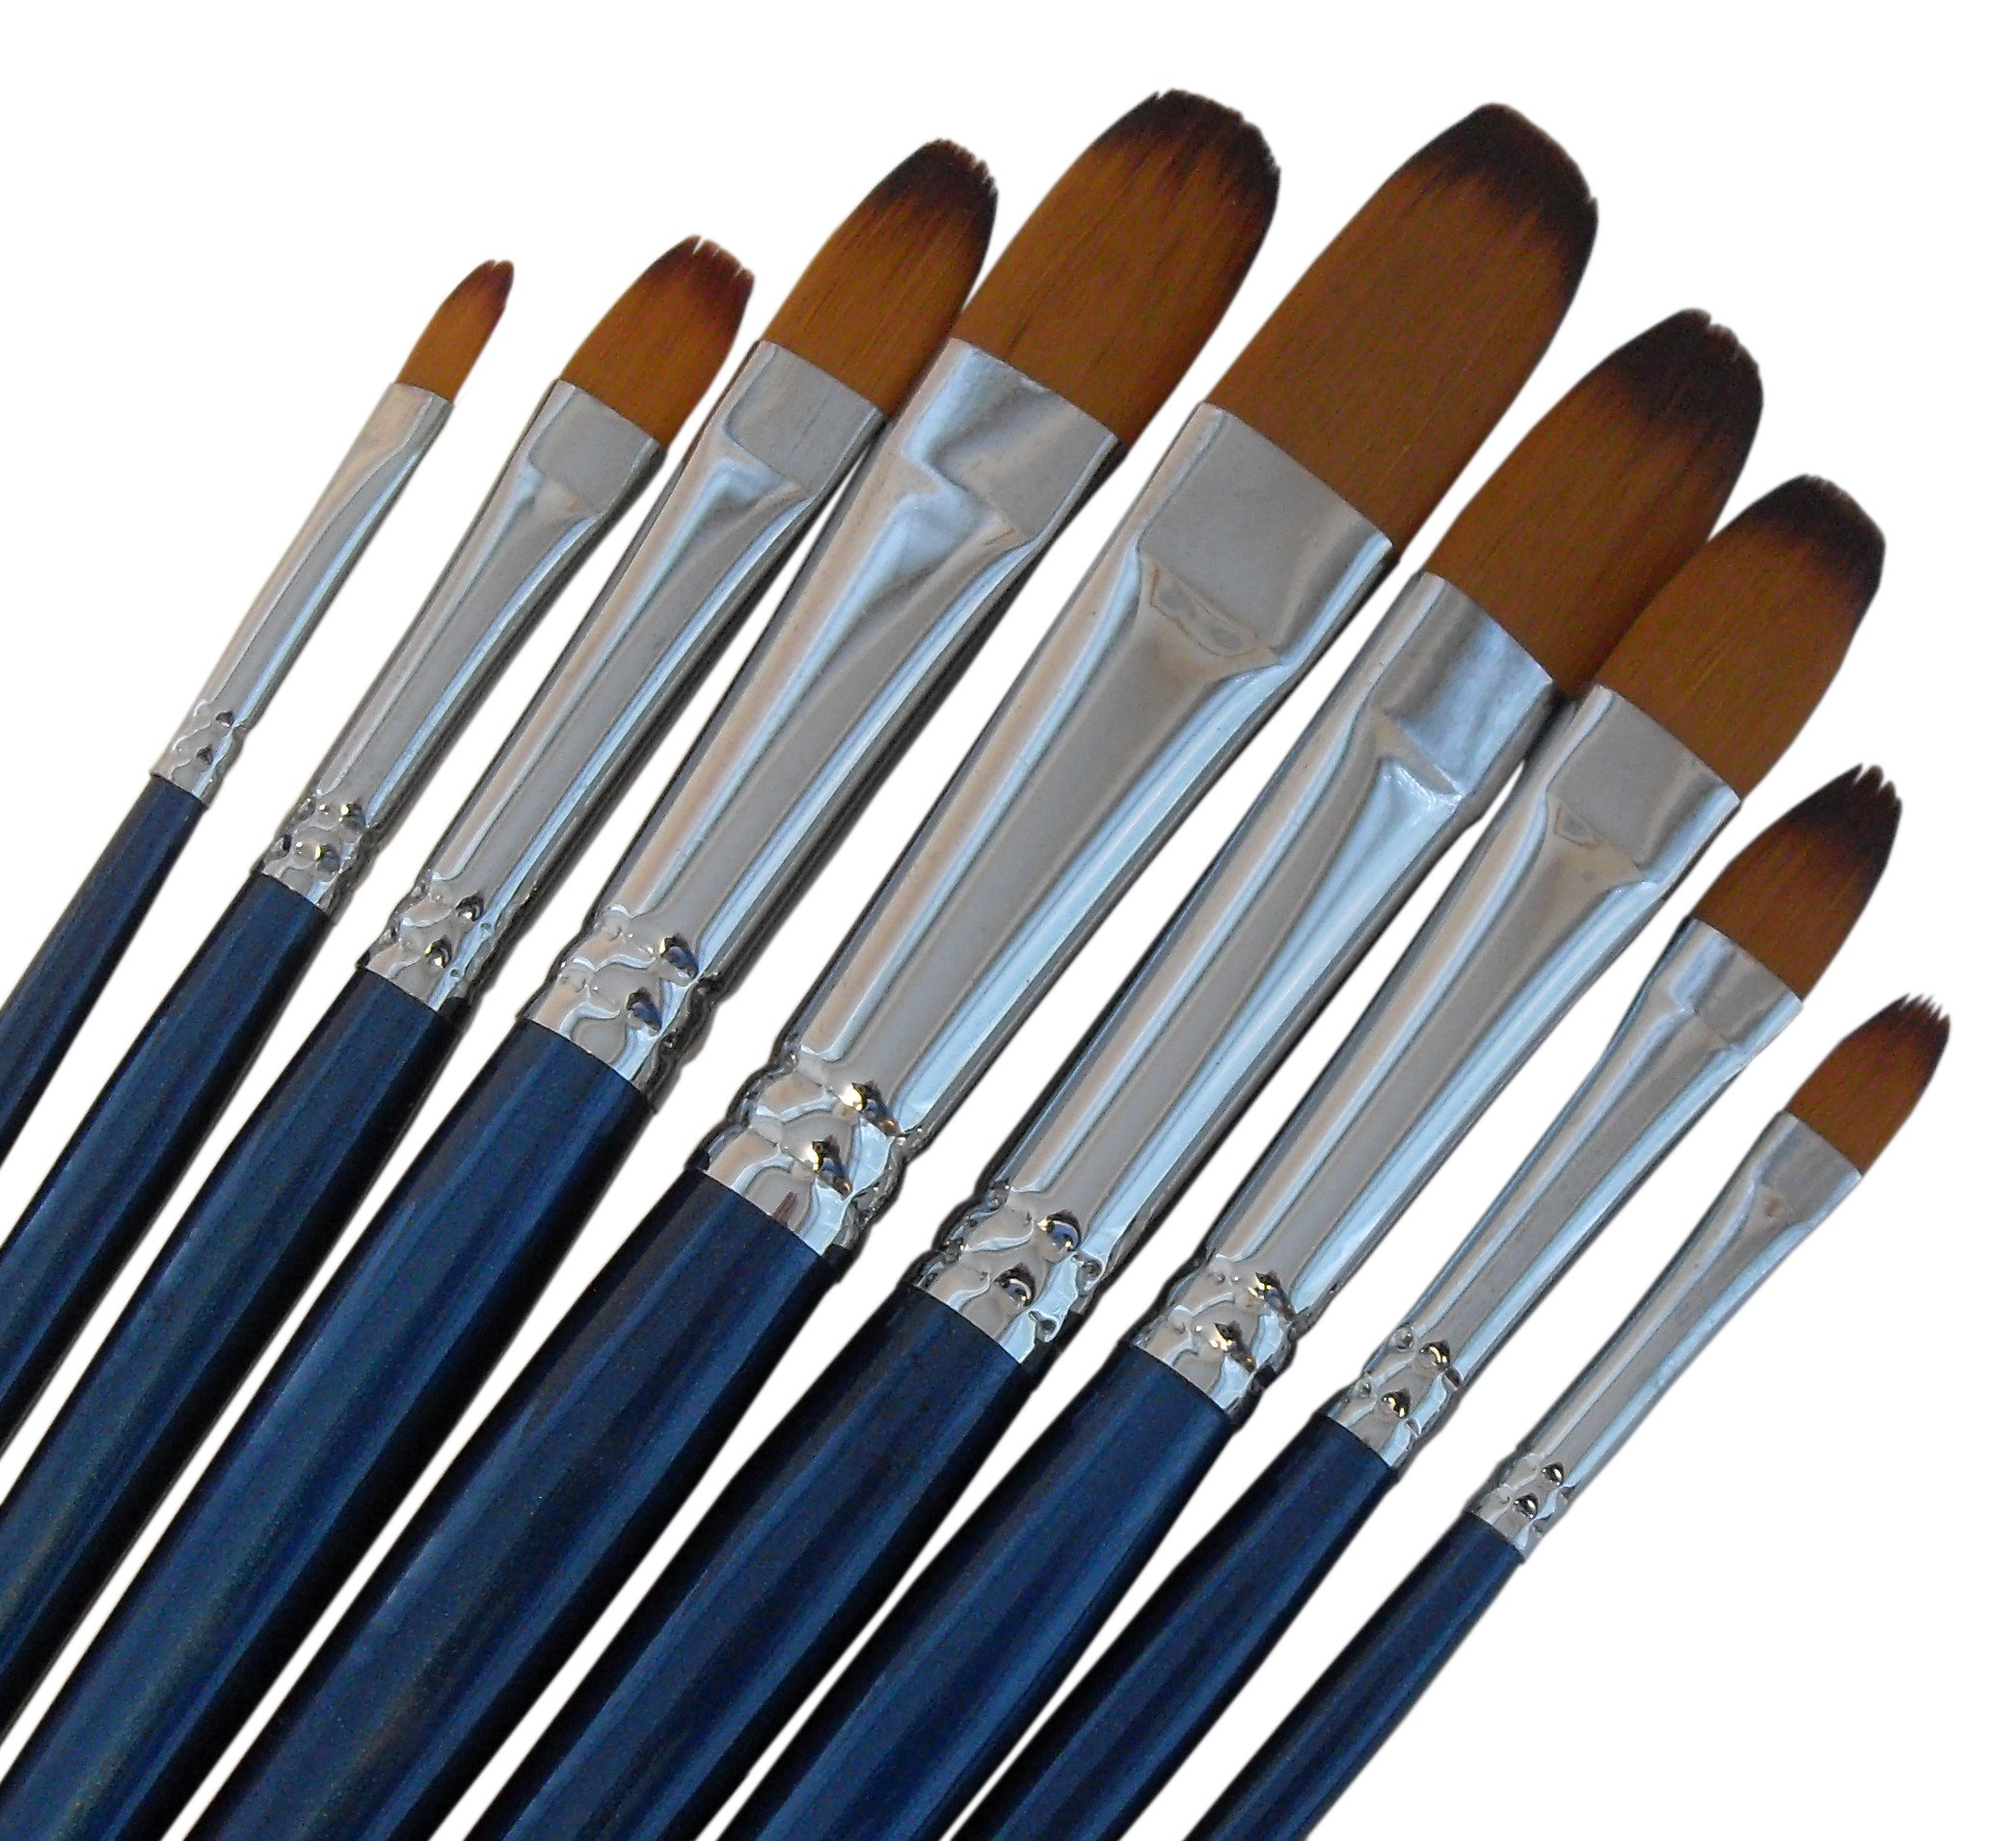 ARTIST PAINT BRUSHES - Fr - Top Quality Black Tip, Golden Nylon, Long Handle, Filbert Paint Brush Set - Ideal for Acrylic and Oil Painting, and Equally Useful for Watercolor and Gouache Color Painting by Magic Touches Making Life Magical